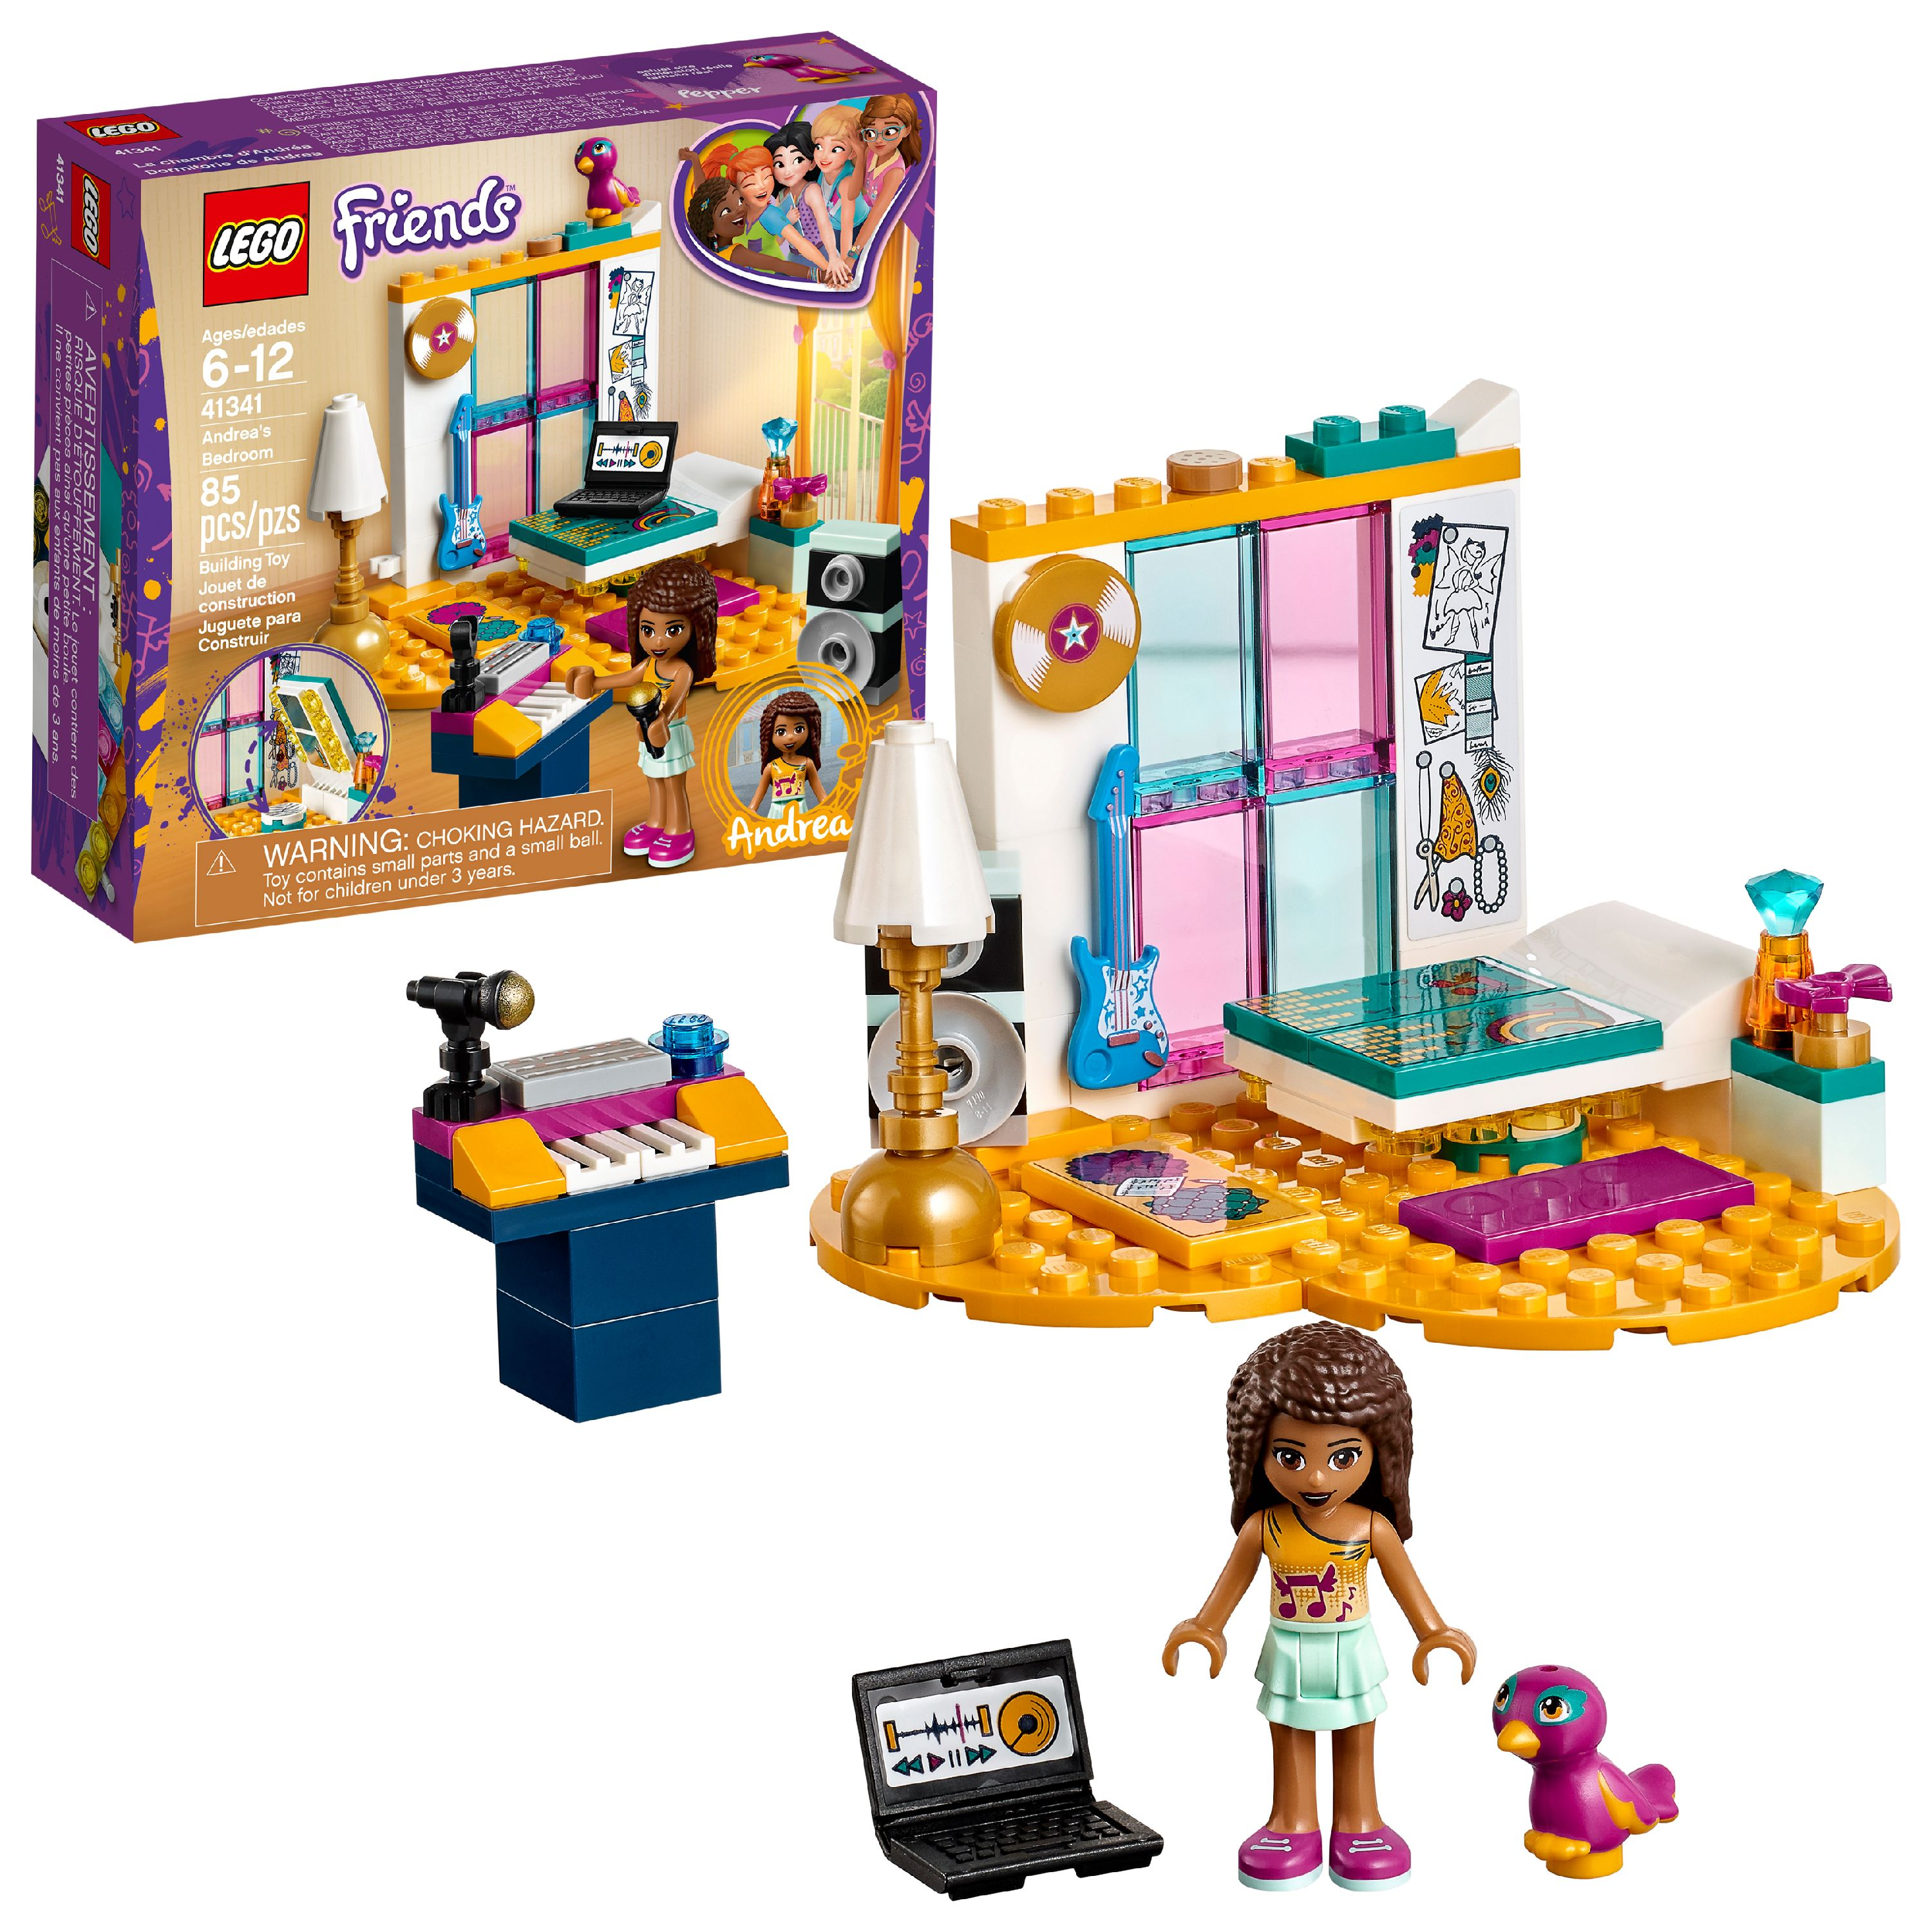 LEGO Friends Andrea's Bedroom 41341 Building Set (85 Pieces)